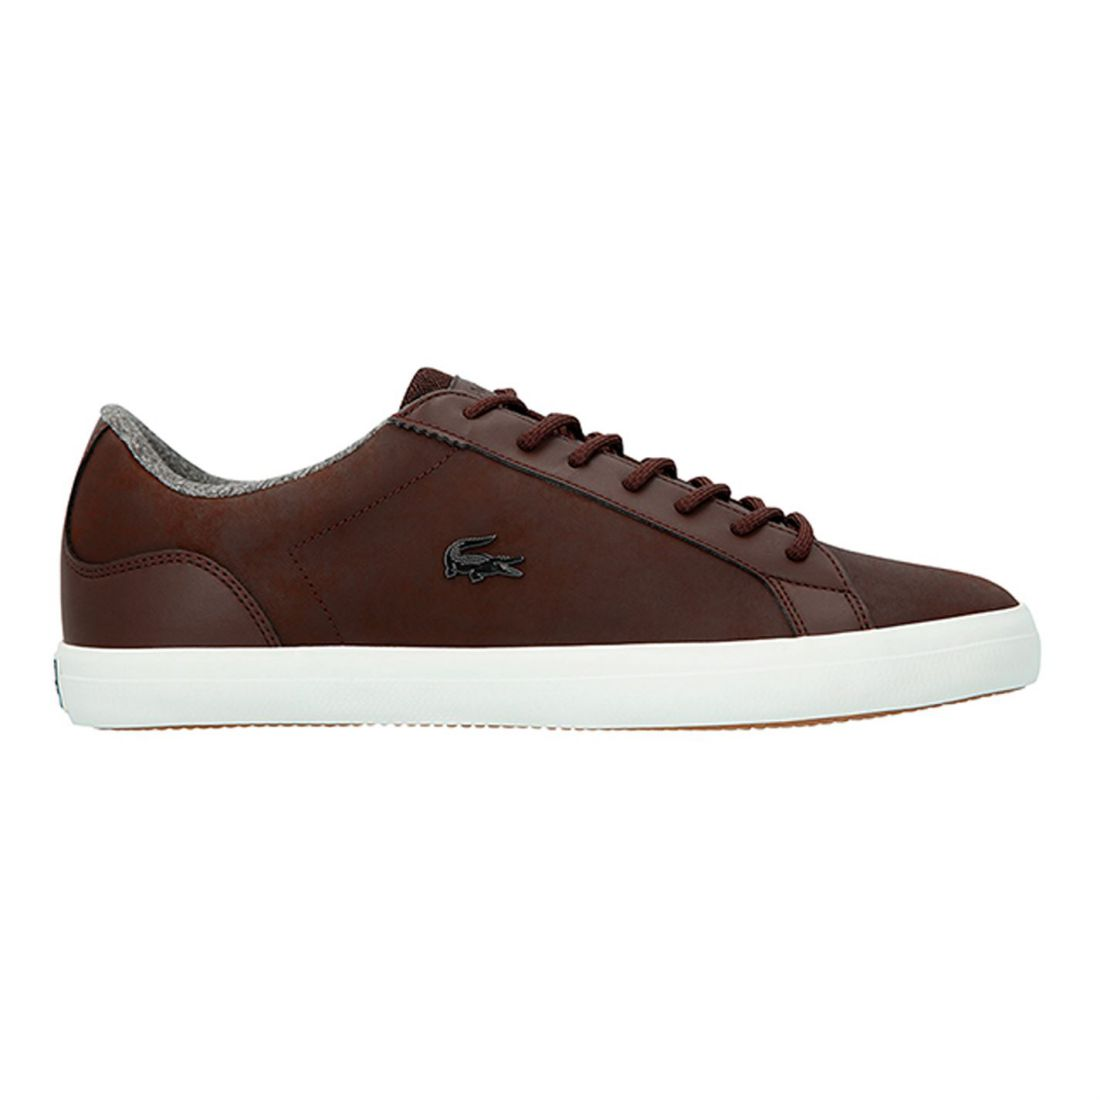 b1d6744ee3258f Image is loading Mens-Lacoste-Lerond-318-Low-Trainers-New